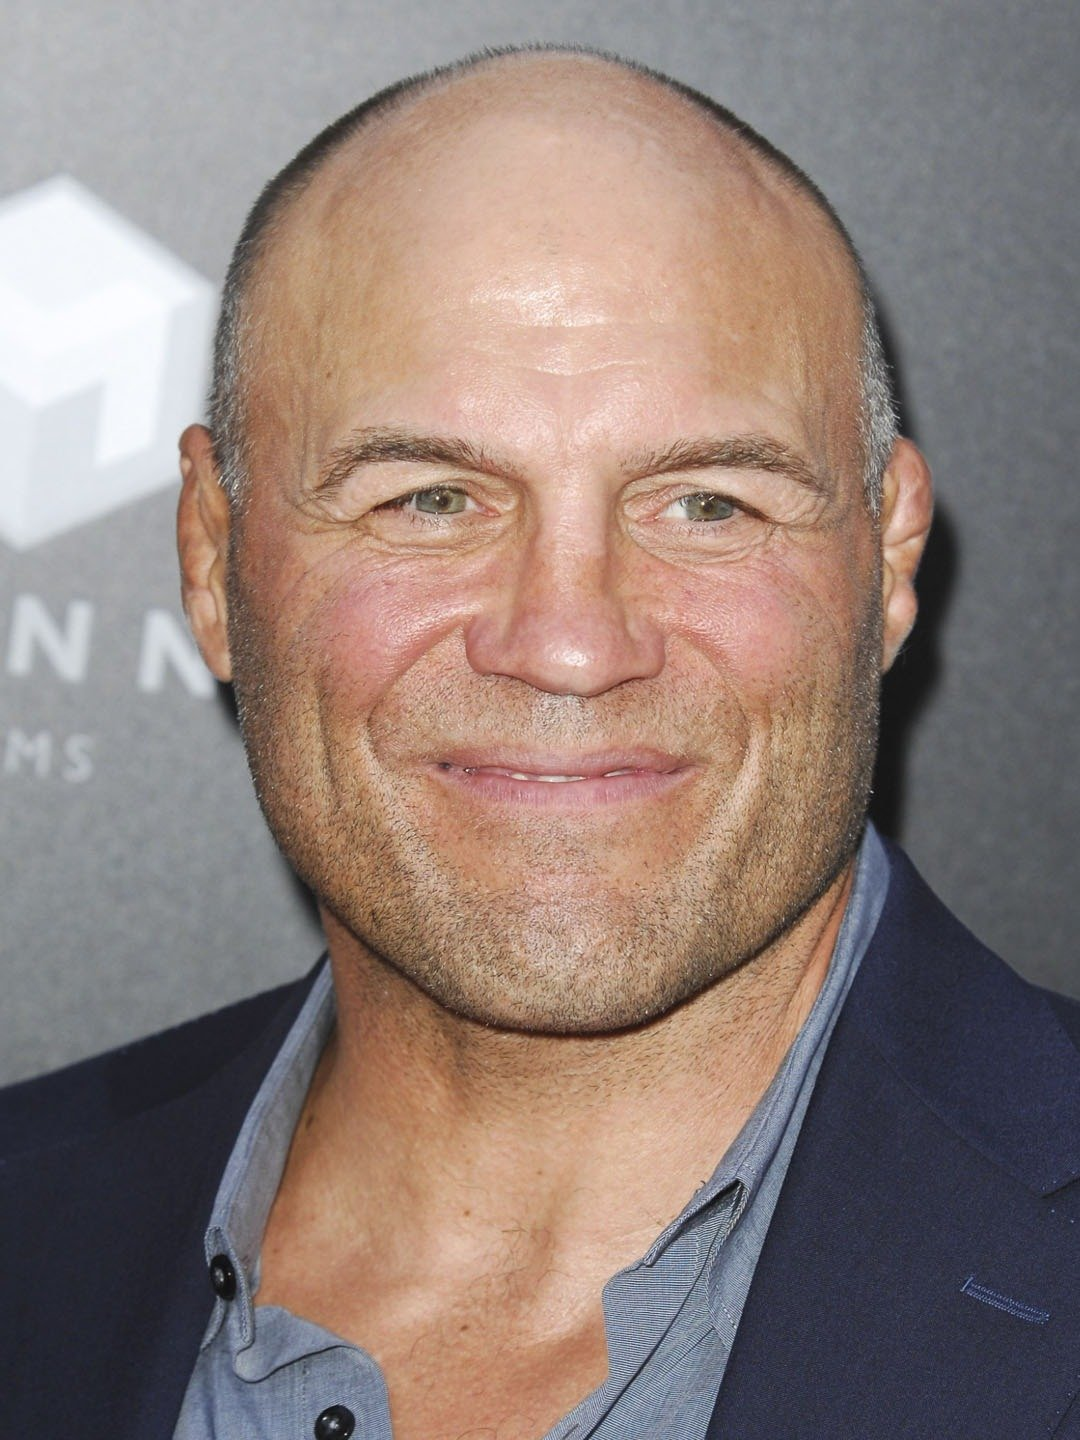 Randy Couture American Actor, Wrestler